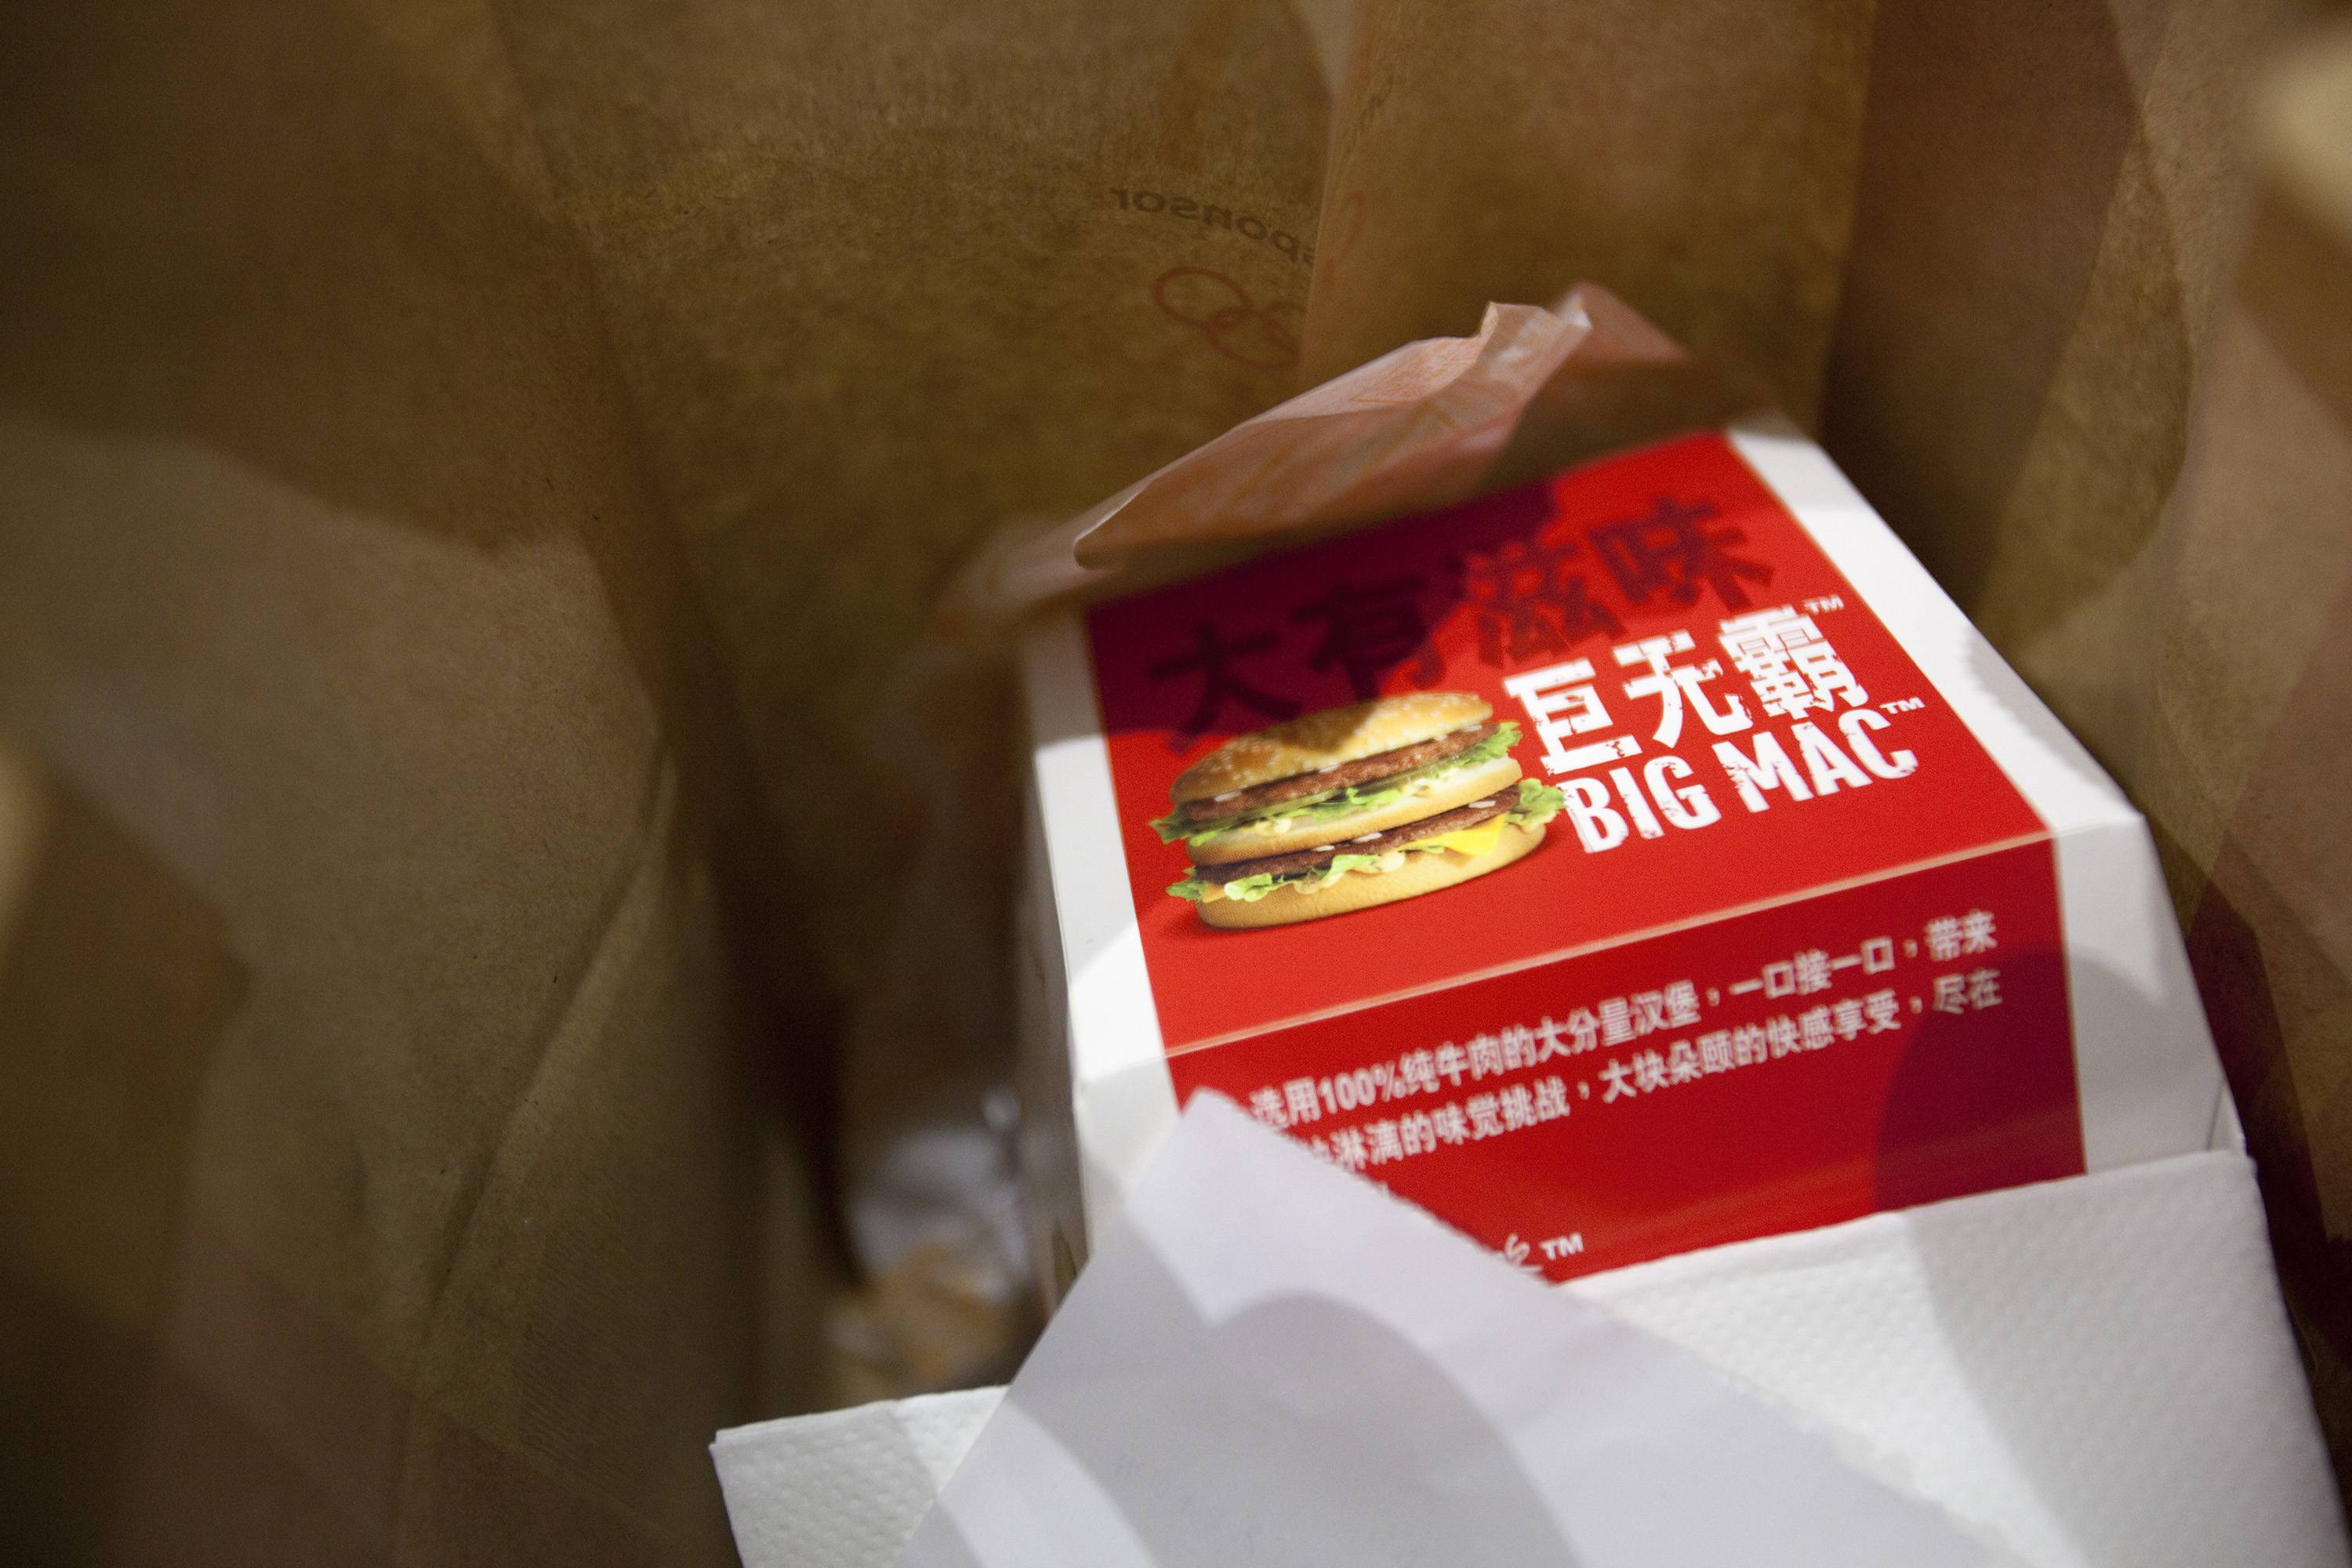 Associated Press Oak Brook-based McDonald's Corp. and Yum! Brands Inc. halted buying meat products from a Shanghai supplier while authorities investigate allegations that the company sold chicken and beef past its expiration date.